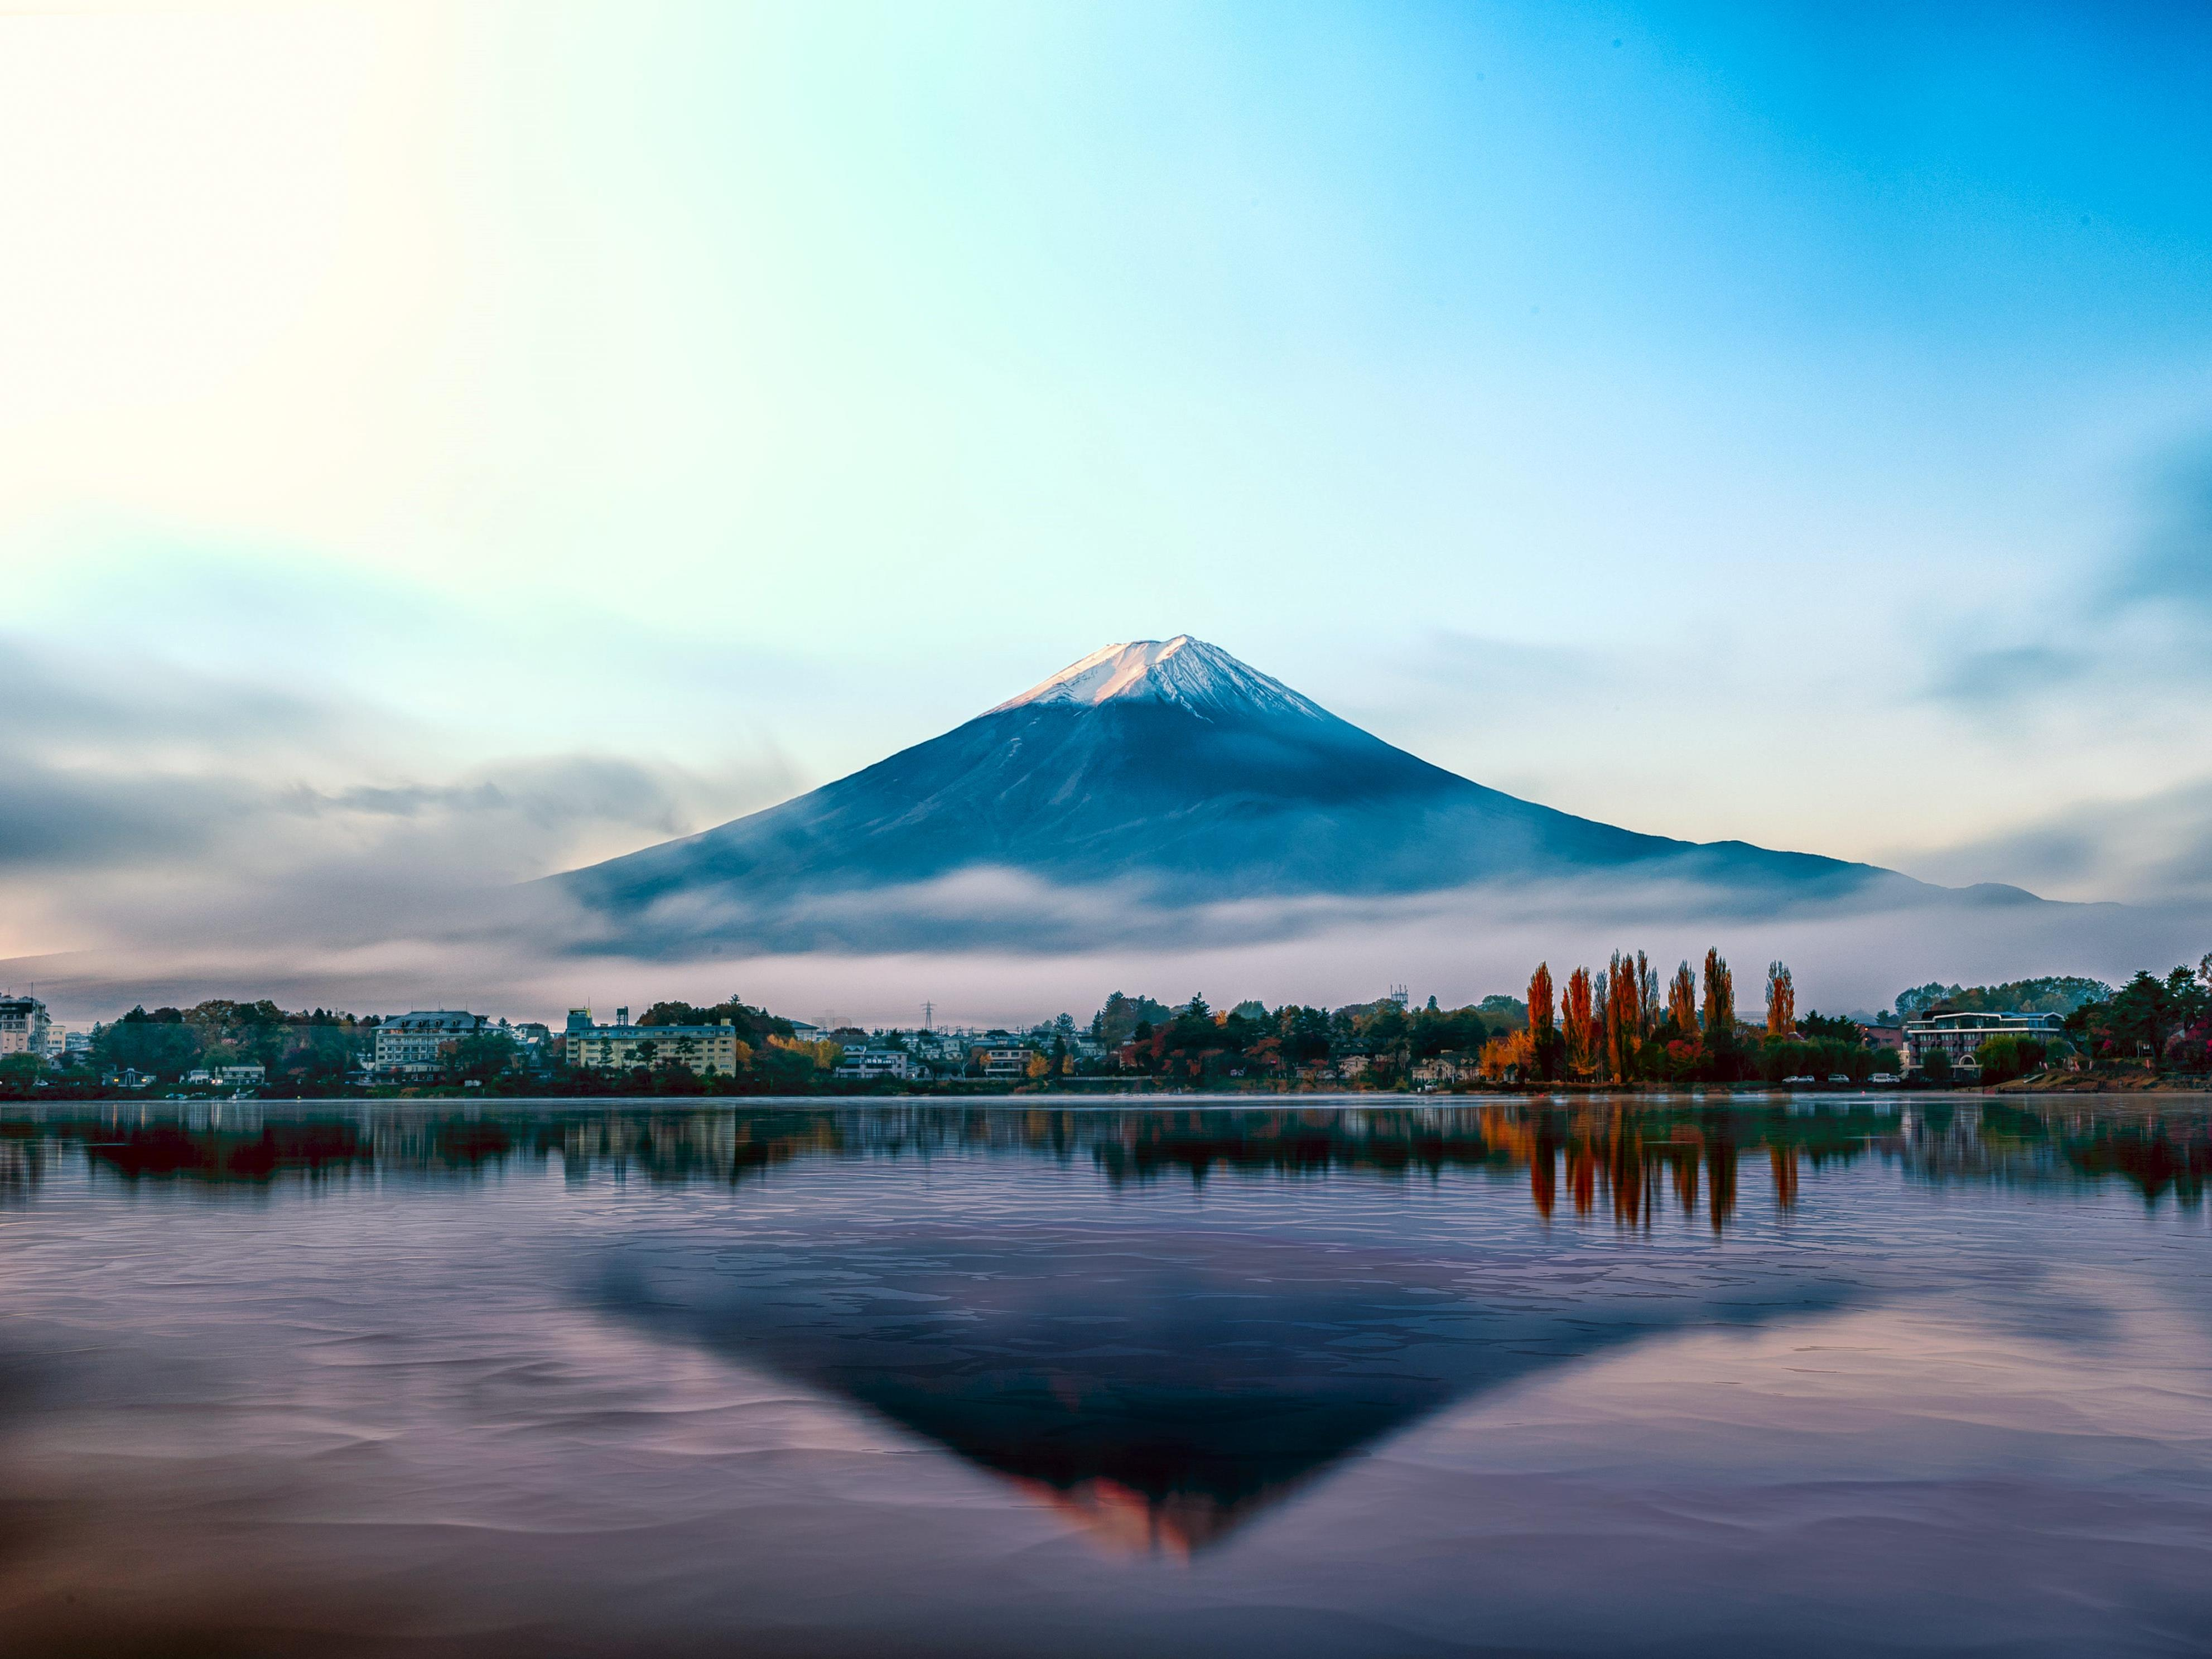 Slide 18 of 51: Japan's tallest mountain (12,388 feet high) towers over the nearby countryside, which is often enveloped in a thick layer of fog. Fuji is an active volcano, last erupting in 1707.